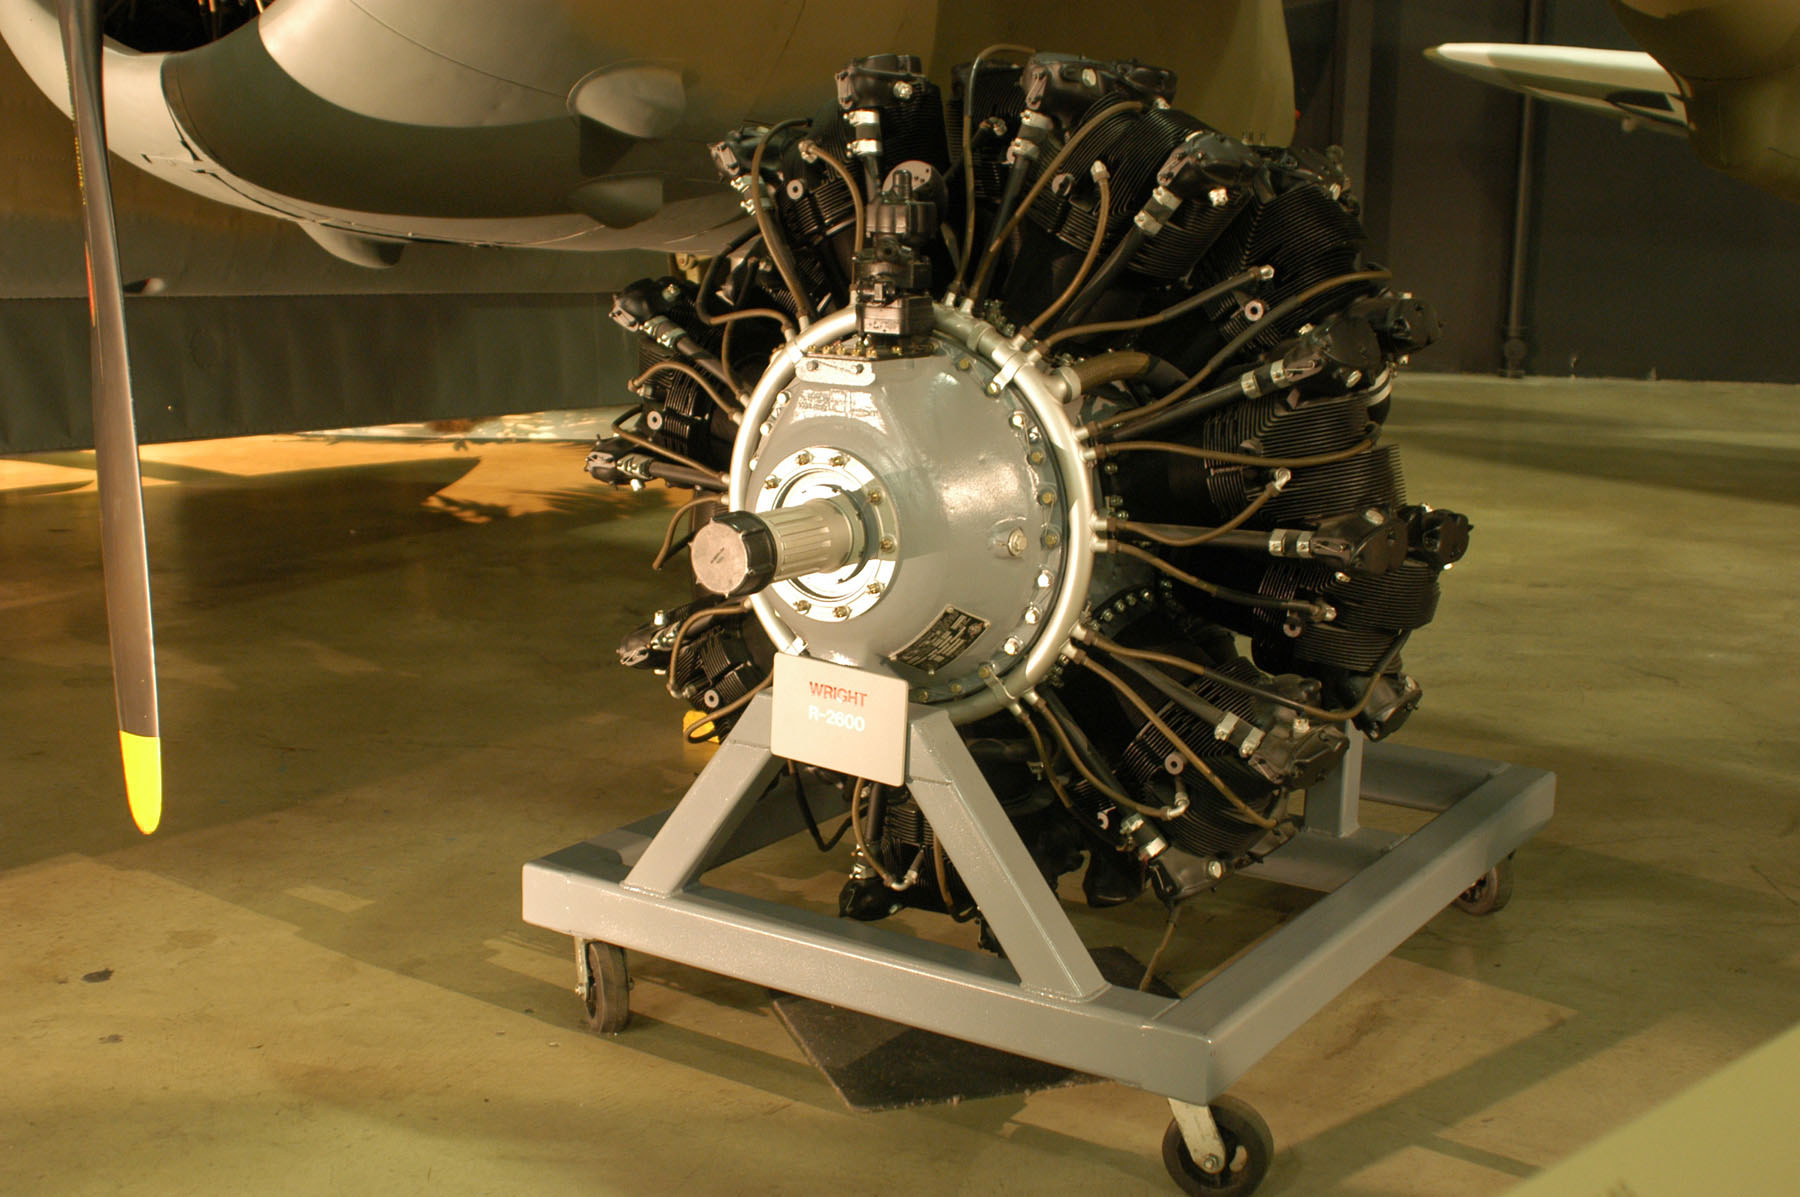 Force Engine Carburetor Diagram Wright R 2600 13 Gt National Museum Of The United States